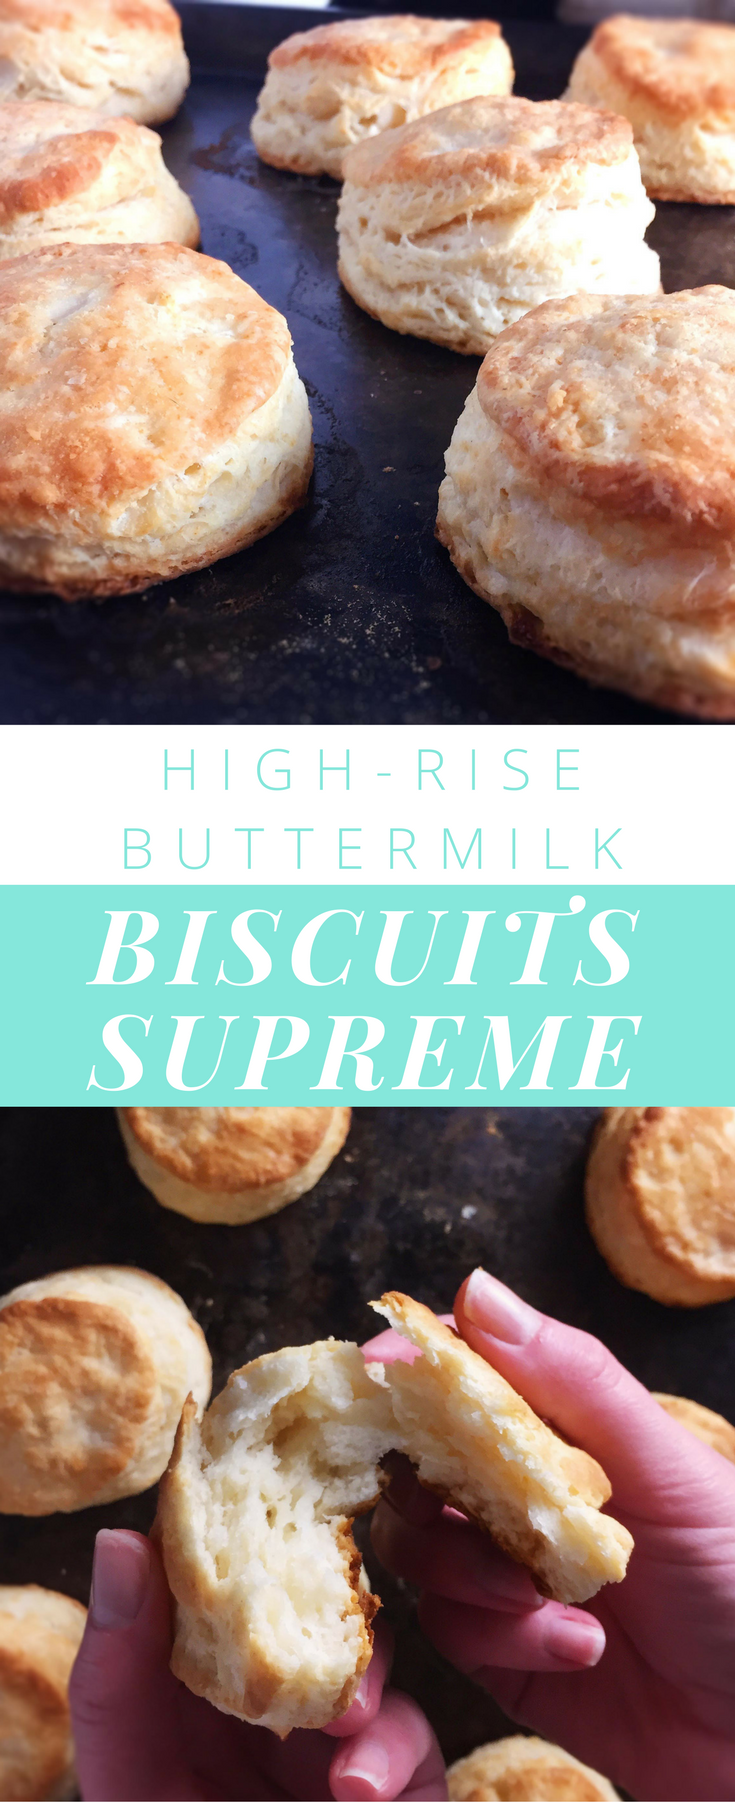 high-rise-buttermilk-biscuits-supreme